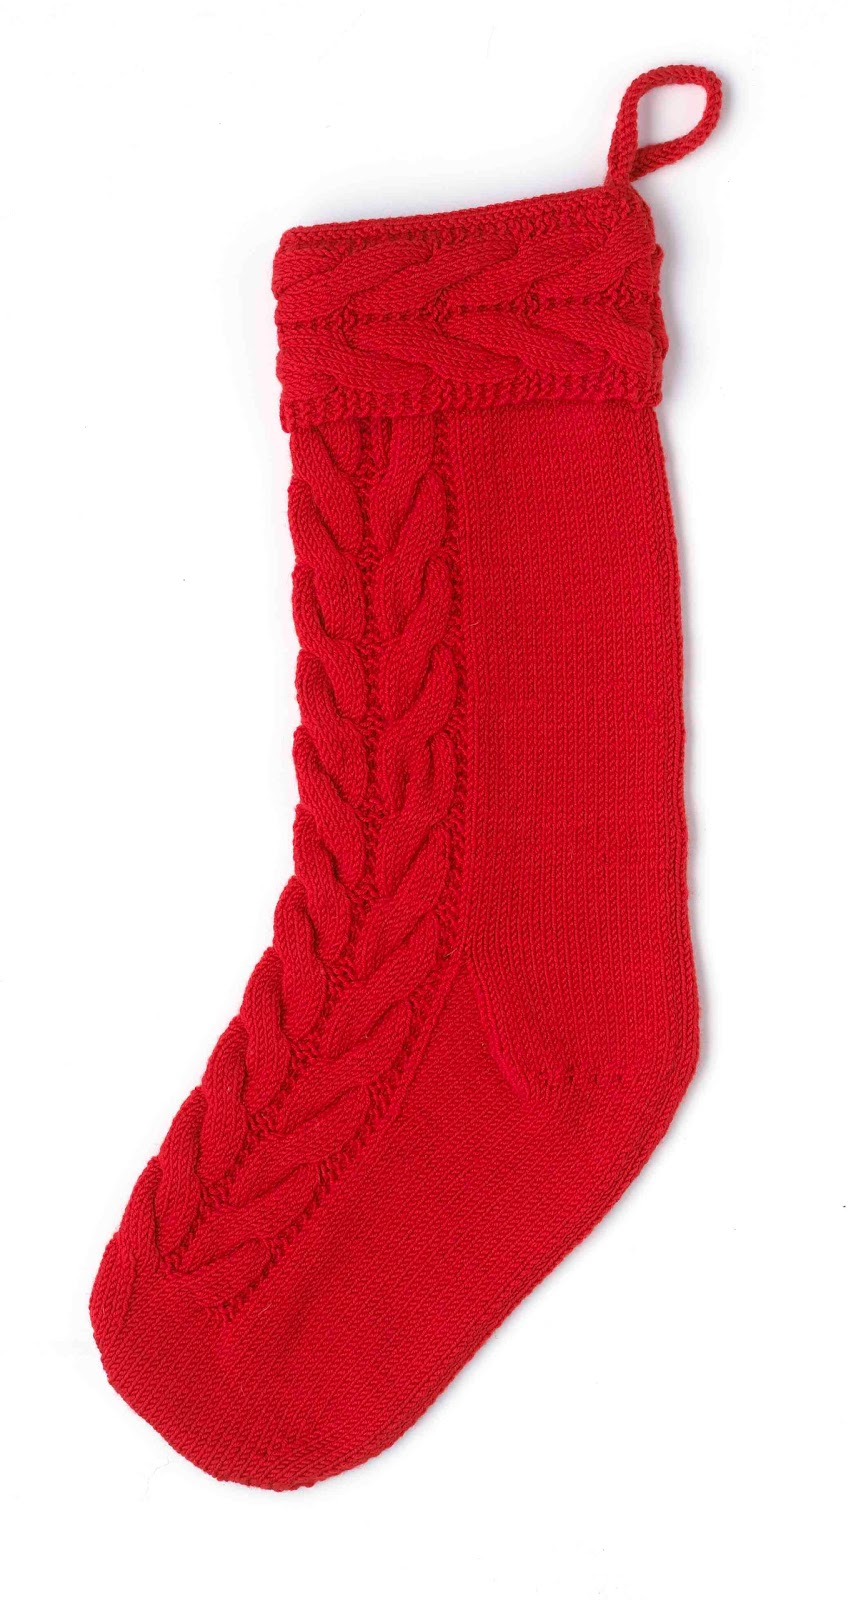 Cable Knit Christmas Stocking Pattern : Cable Knit Christmas Stocking Pattern Car Interior Design